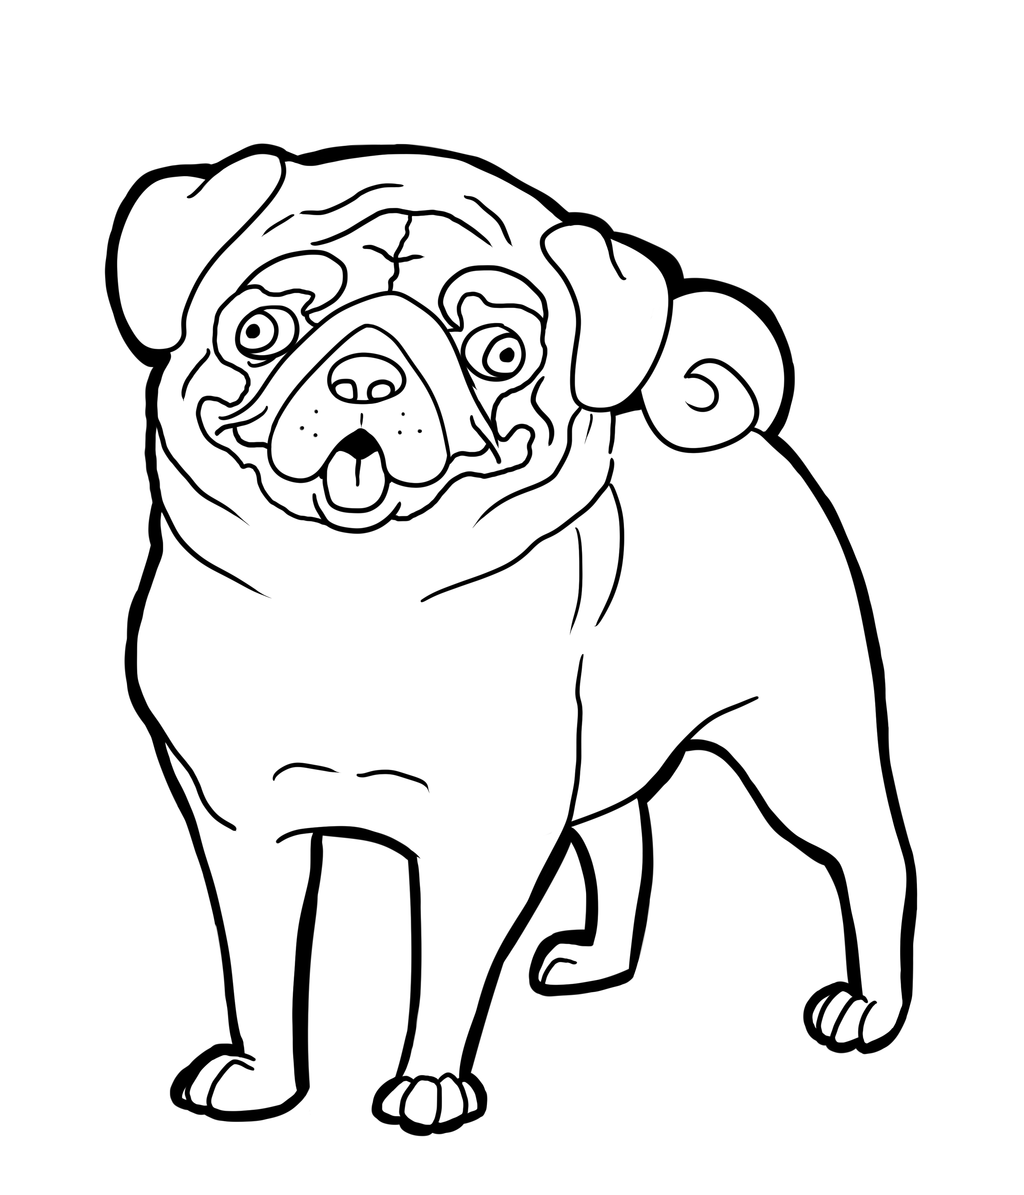 coloring page of a dog pug coloring pages to download and print for free a dog coloring page of